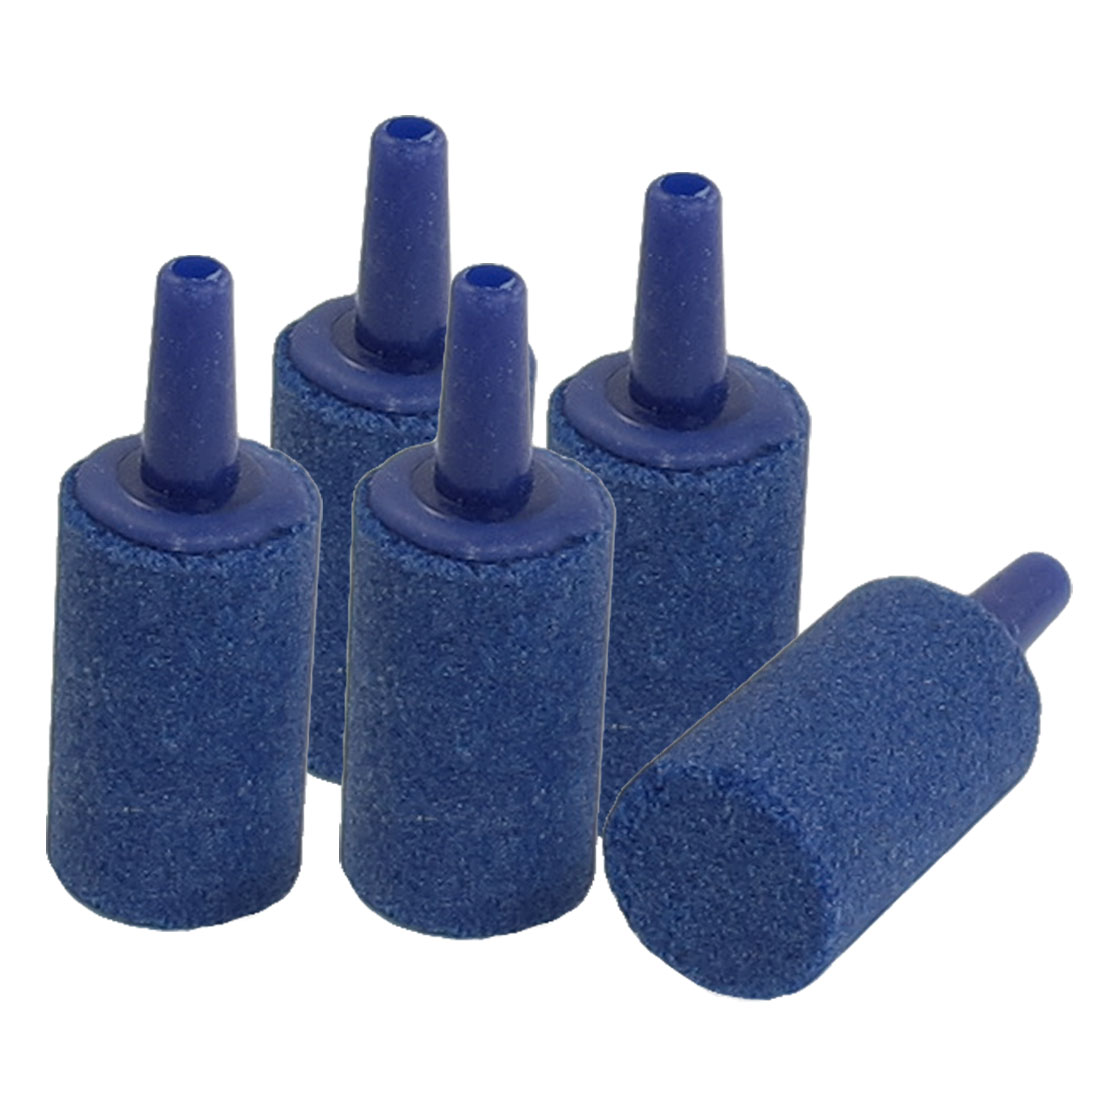 5 Pcs Blue 15mm Dia Cylinder Mini Air Bubble Stone for Aquarium